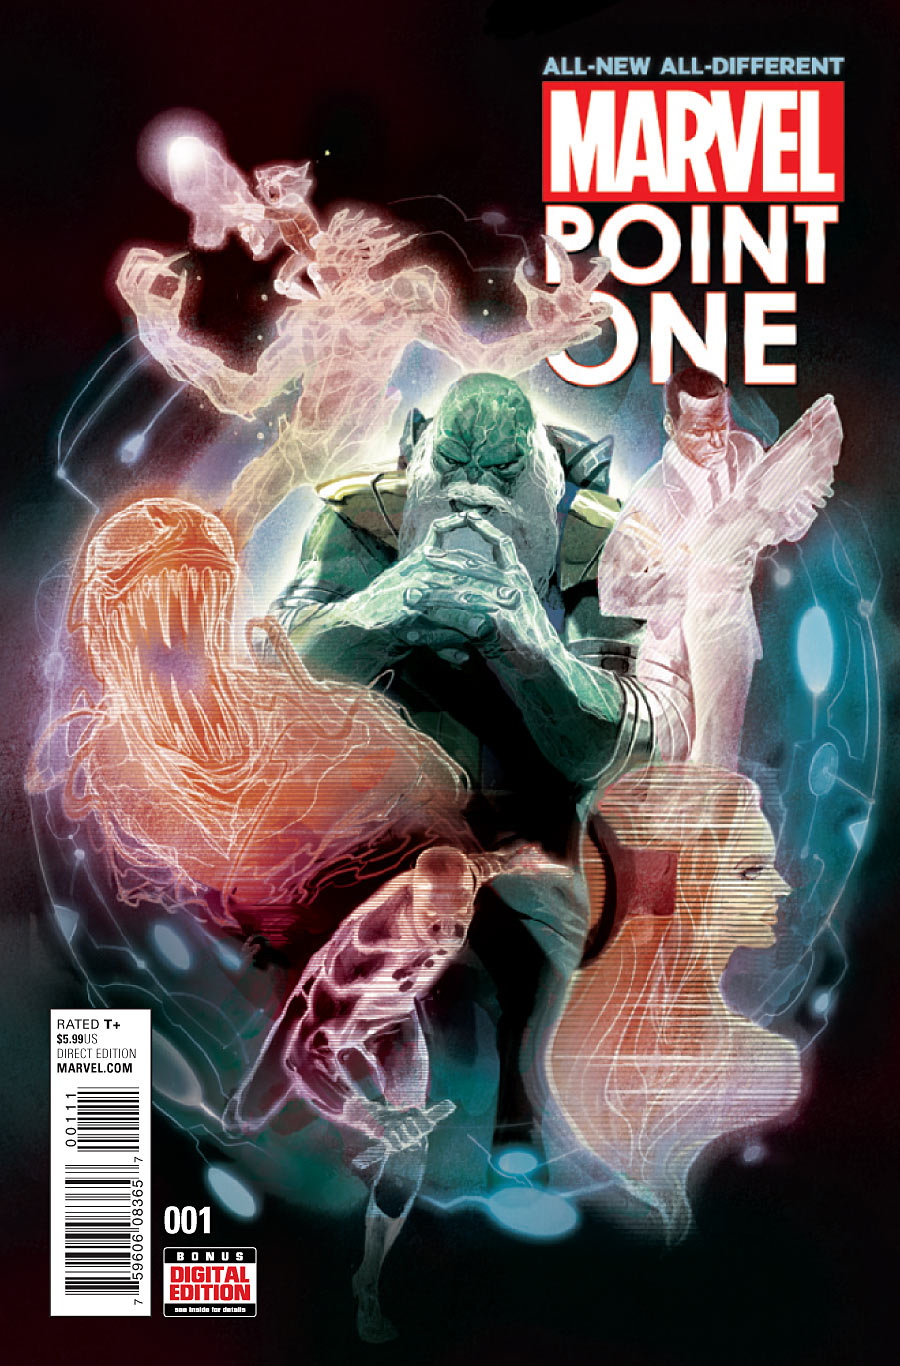 All-New, All-Different Marvel Point One #1